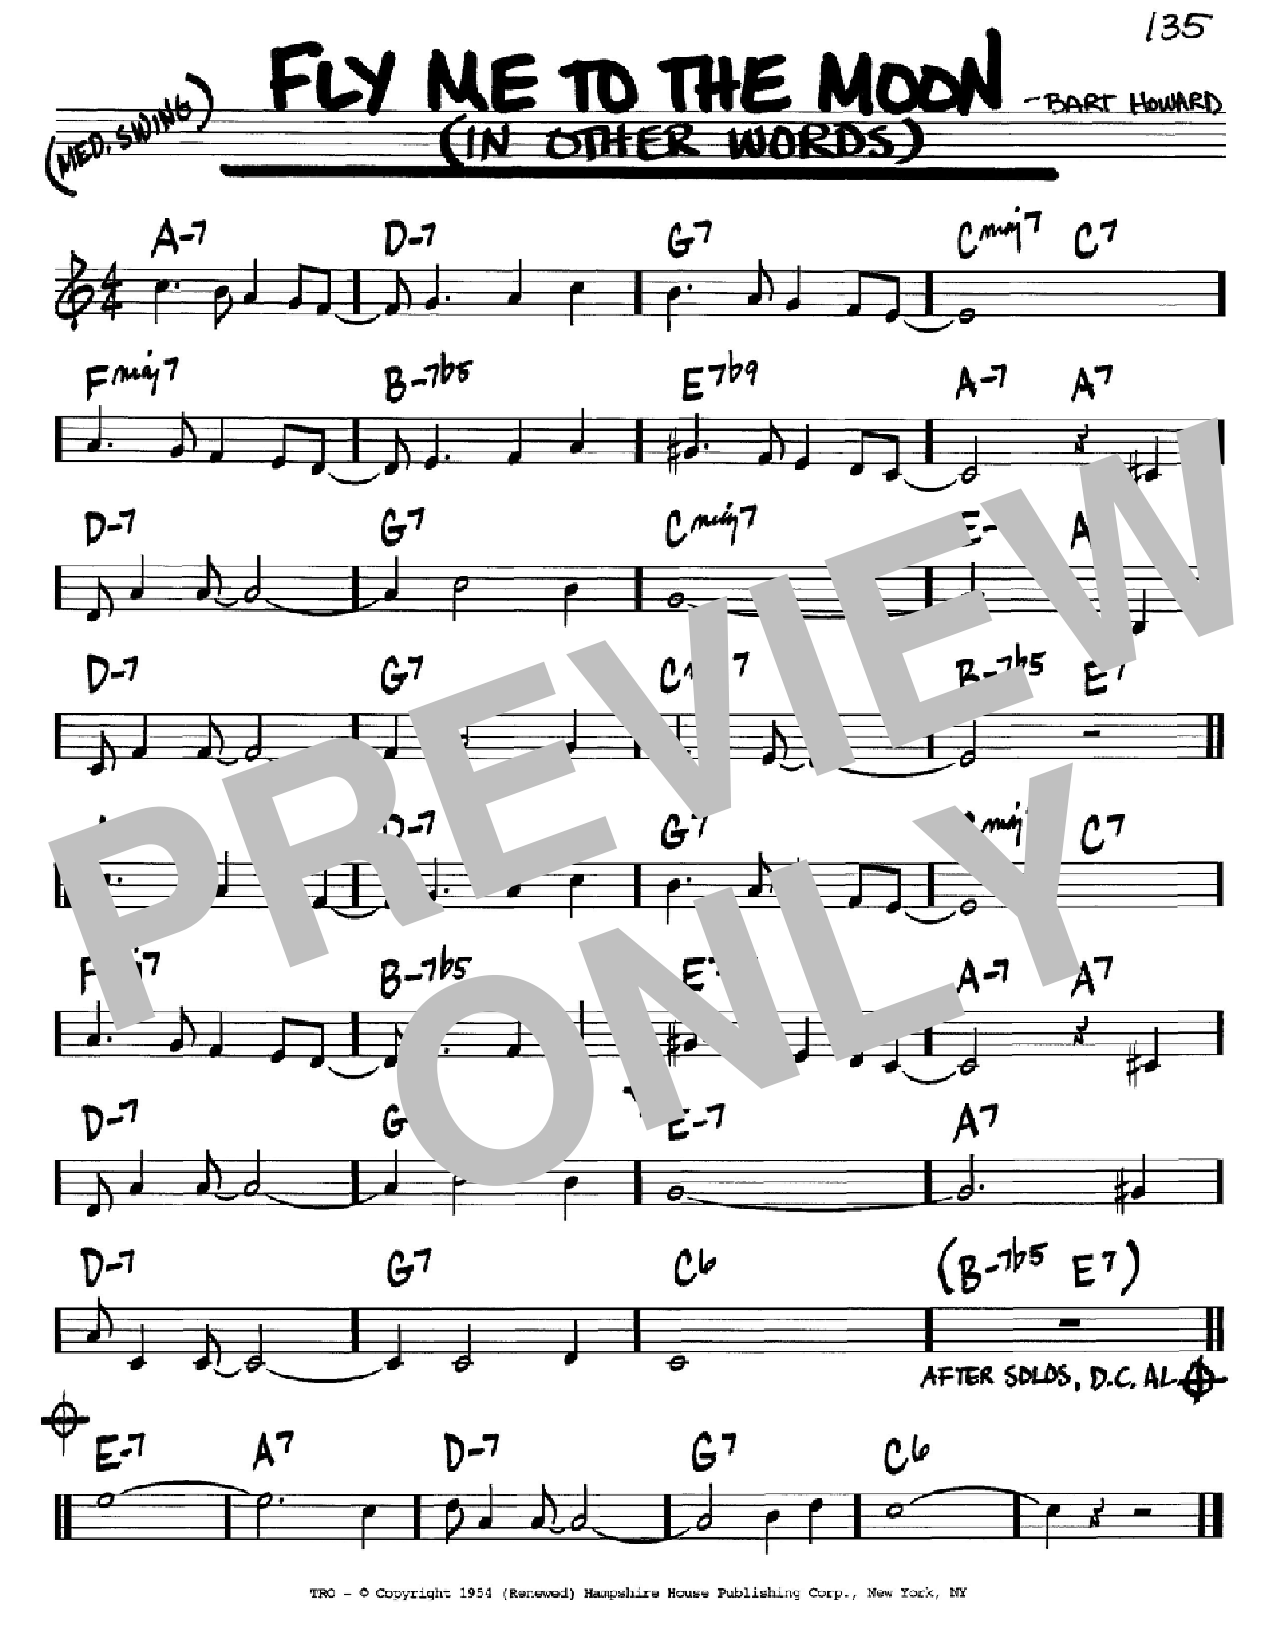 Fly me to the moon chords pdf